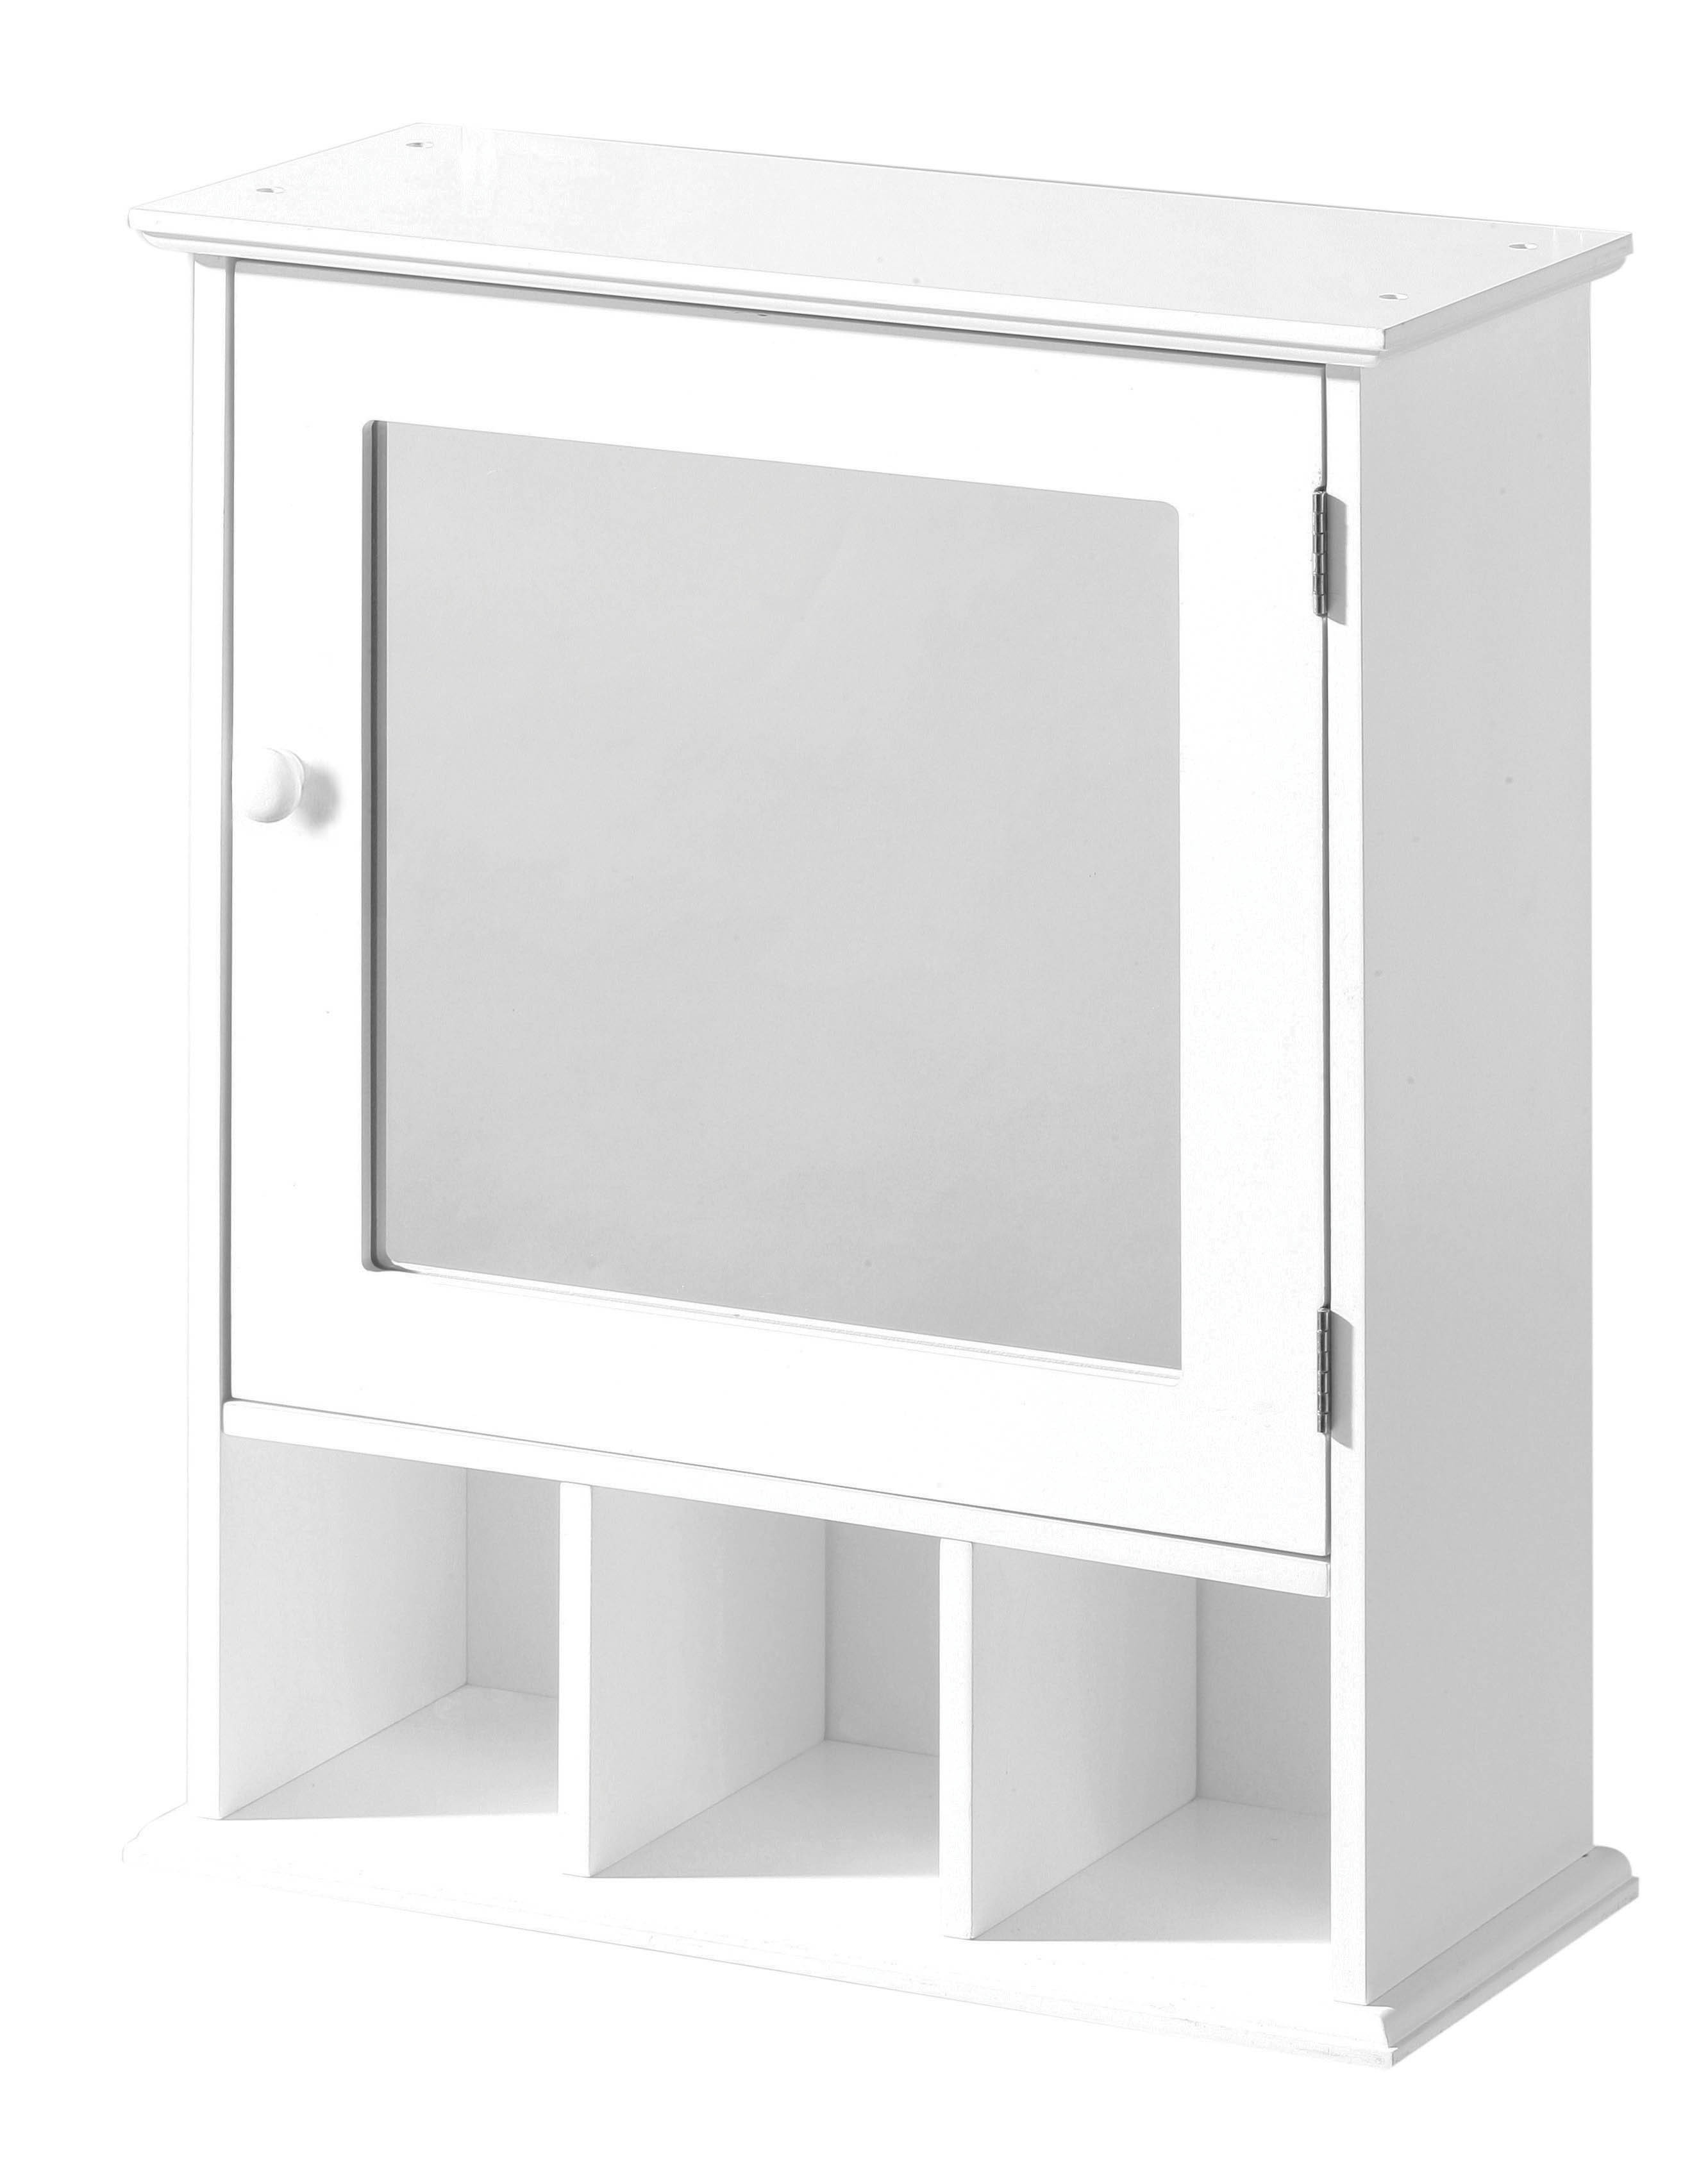 Bathroom Cabinet with Mirrored Door and 3 Compartments - White